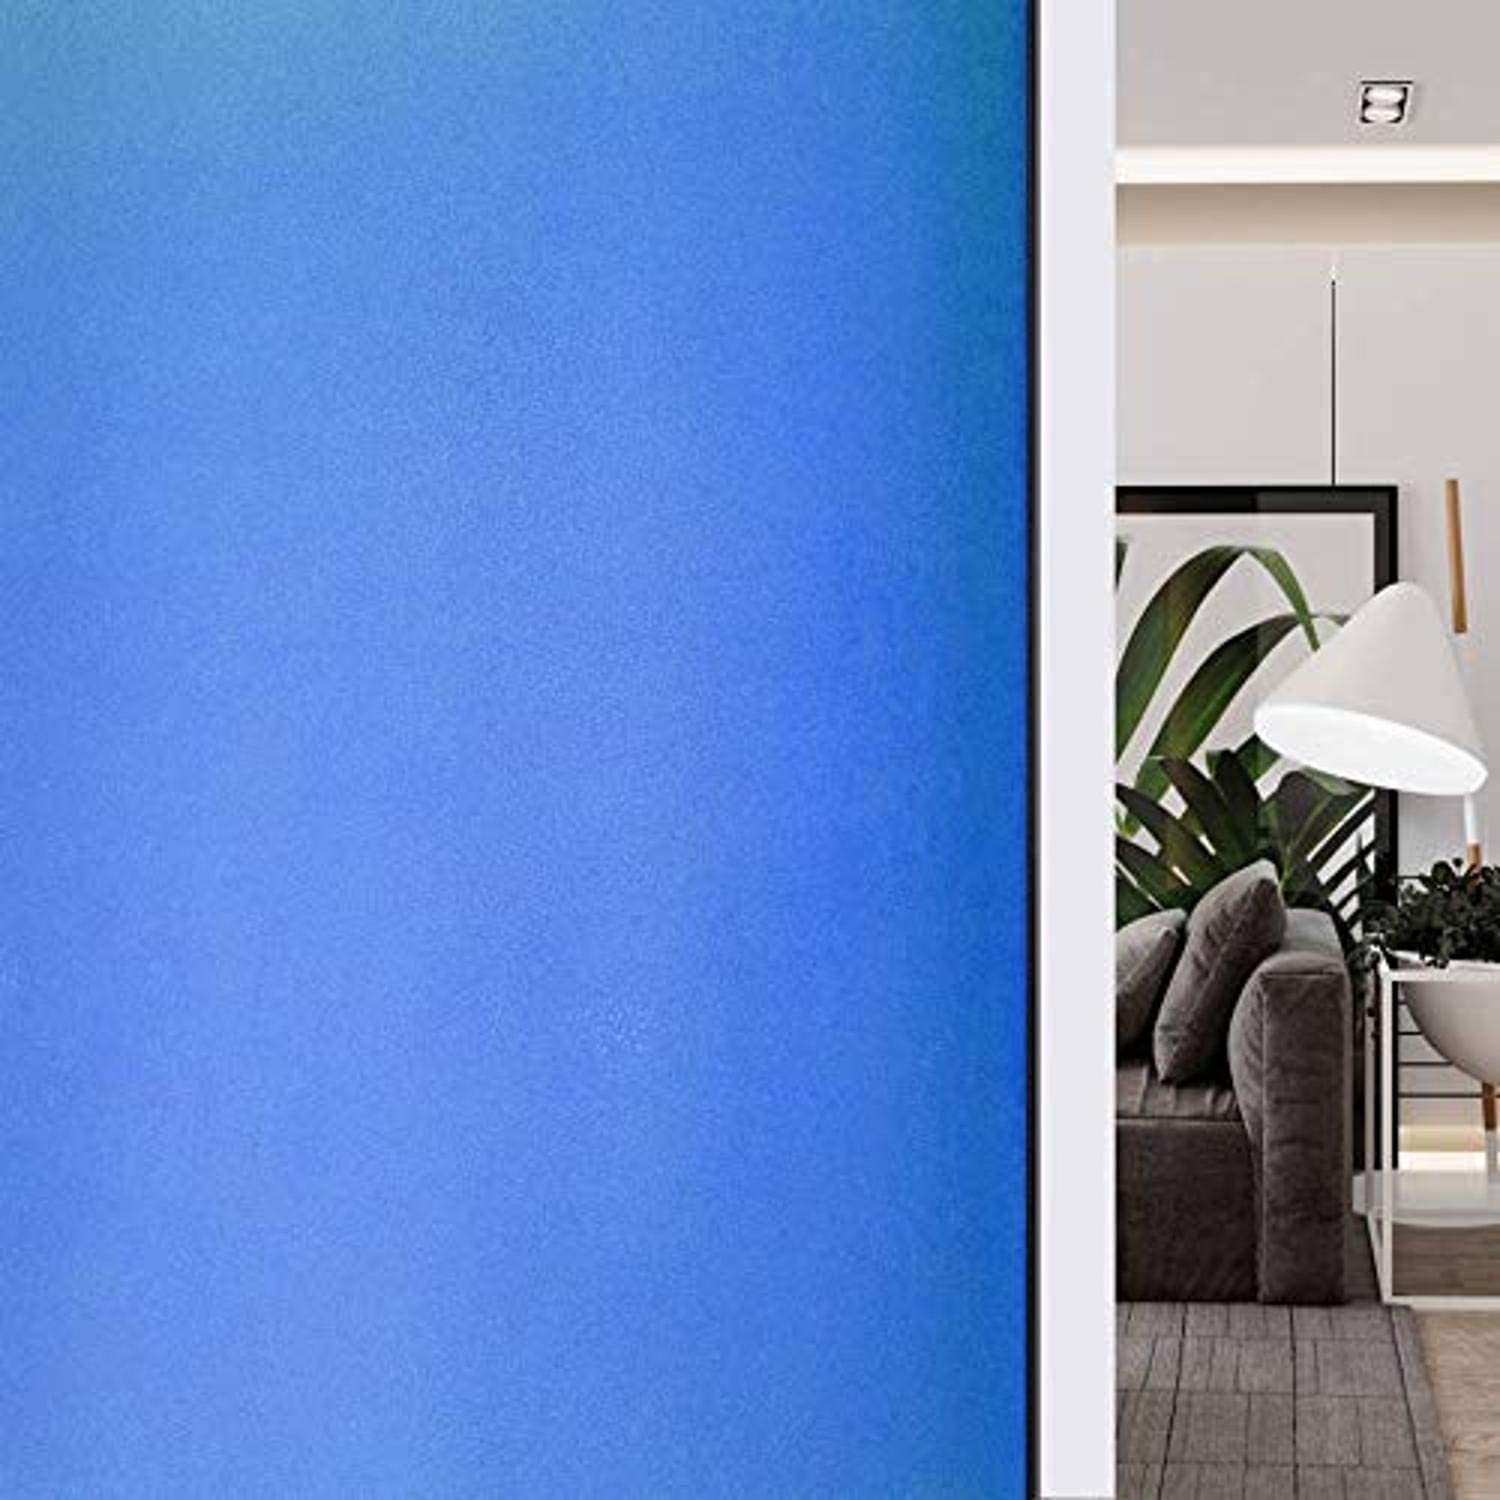 HIDBEA Frosted Window Privacy Film Colorful Decorative Static Cling Non-Adhesive UV Blocking Heat Control Reusable Glass Tint for Home Kitchen Bathroom Office, 17.5 Inches x 6.5 feet, 05-Matte Blue